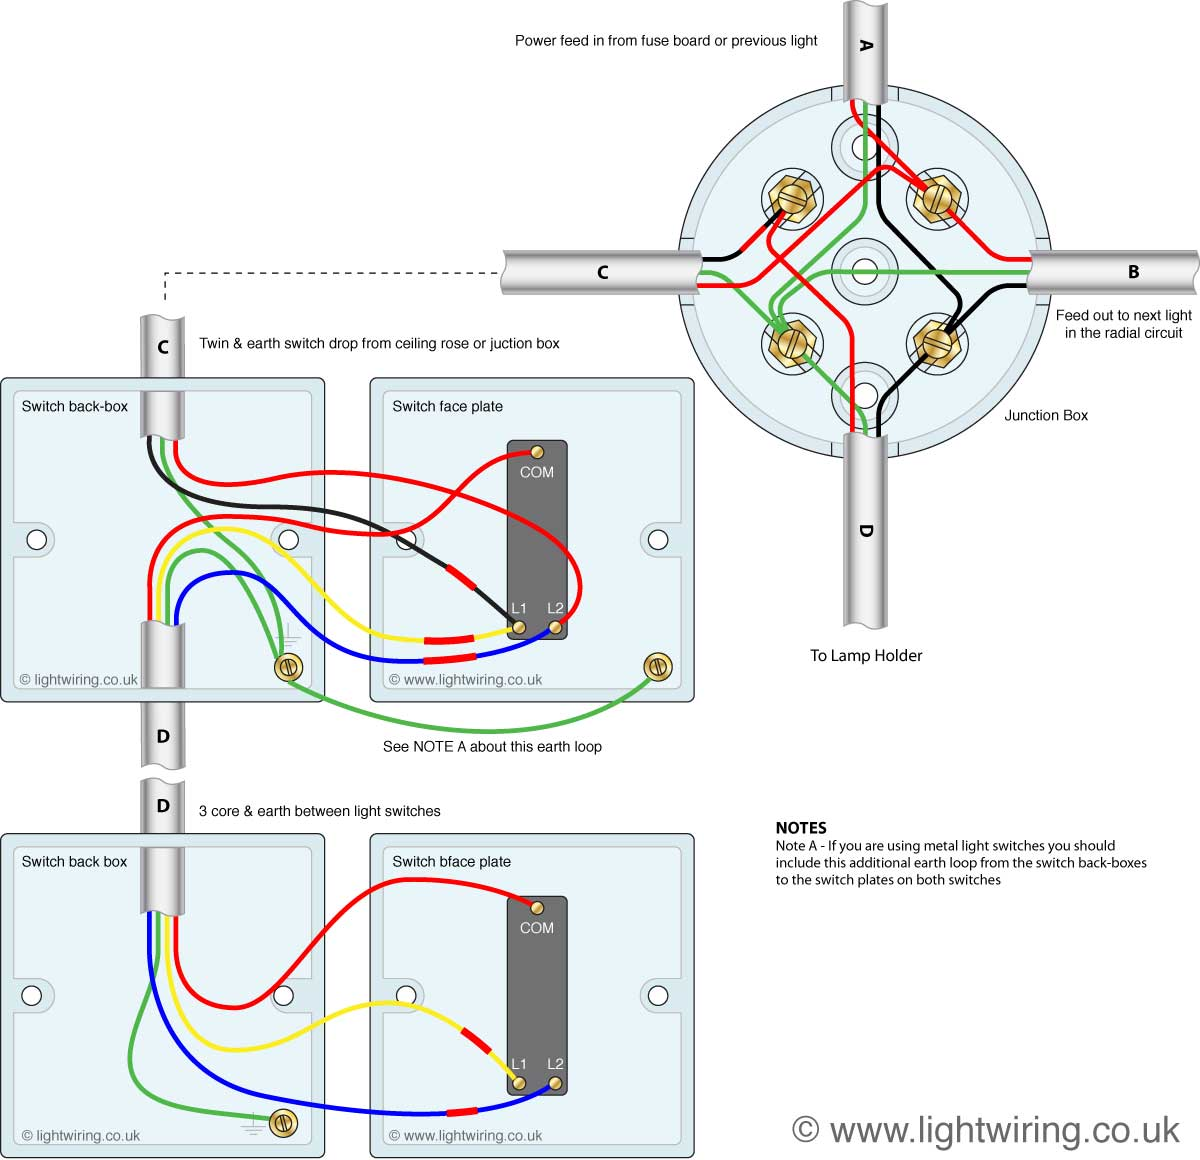 house wiring diagram uk house wiring diagrams house wiring diagram uk 3 way switching from junction box